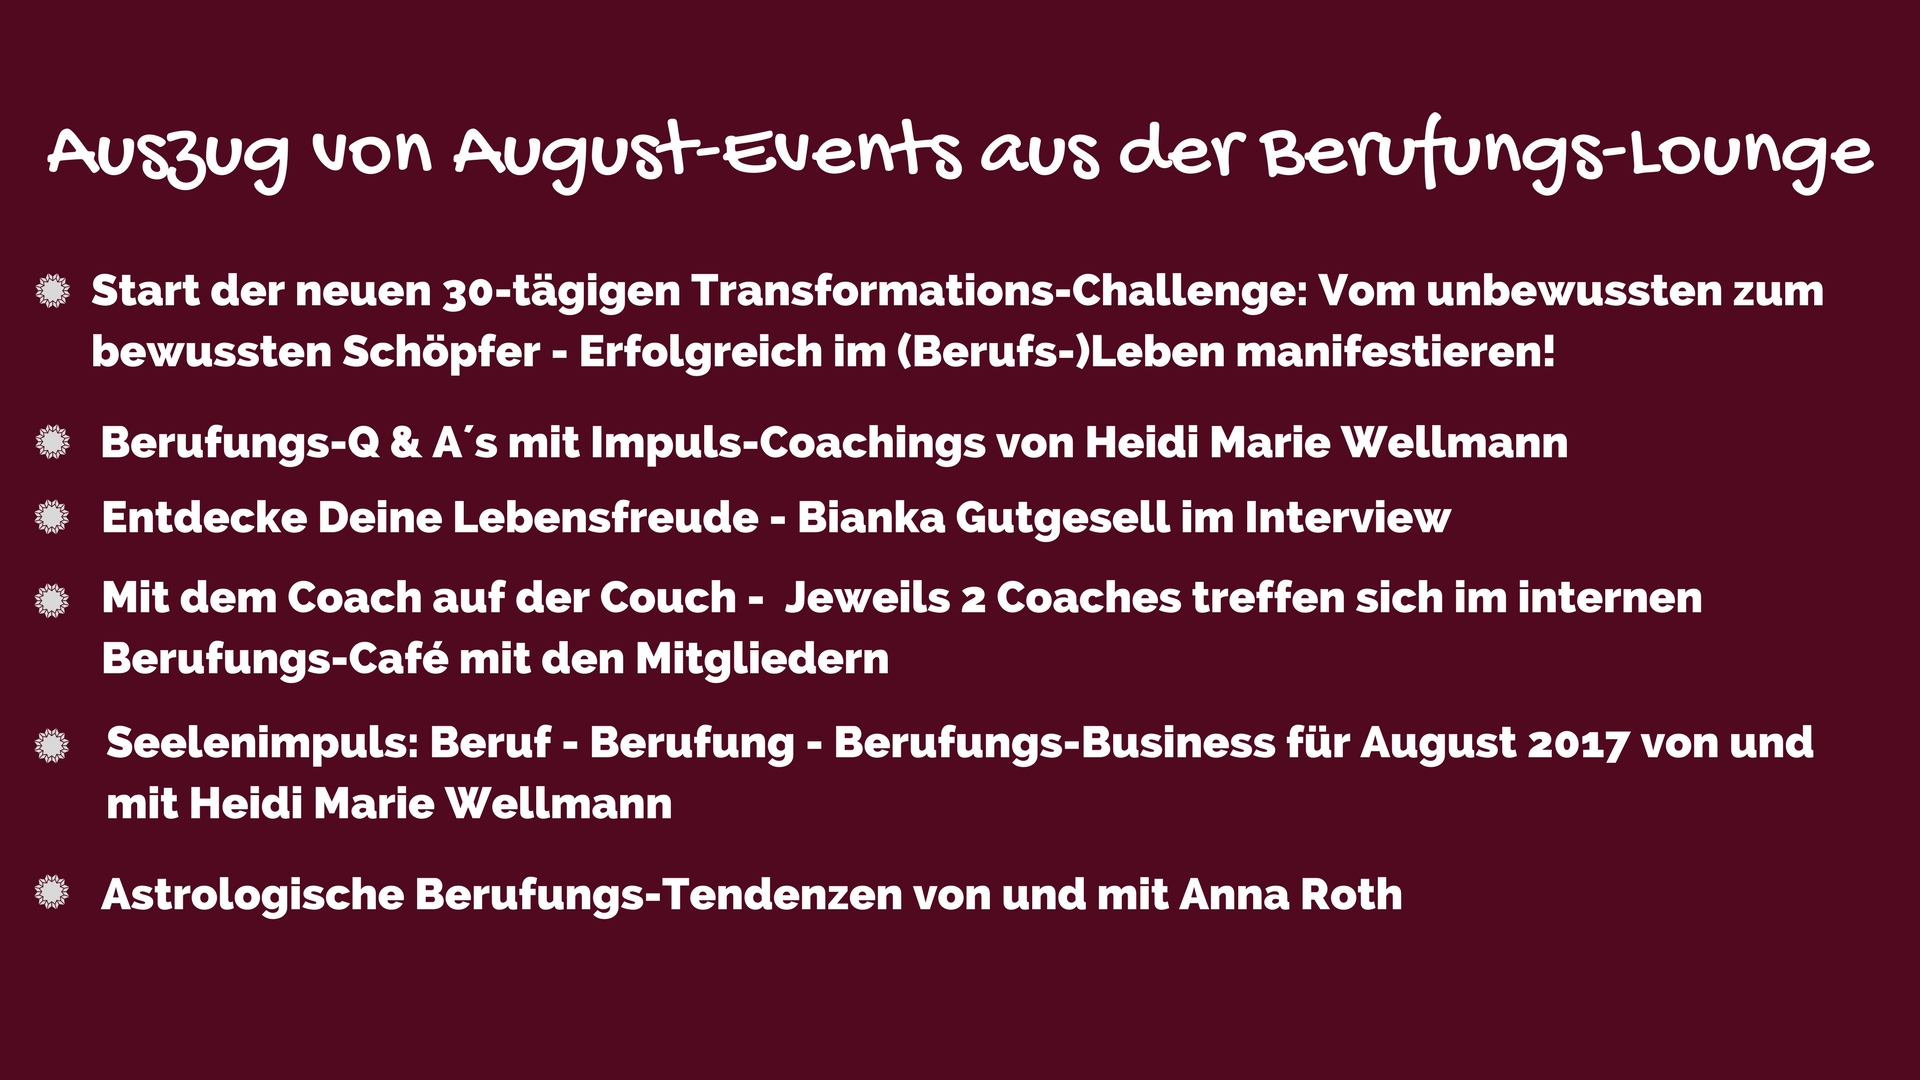 Berufungs-Lounge aktuelle Events August 2017